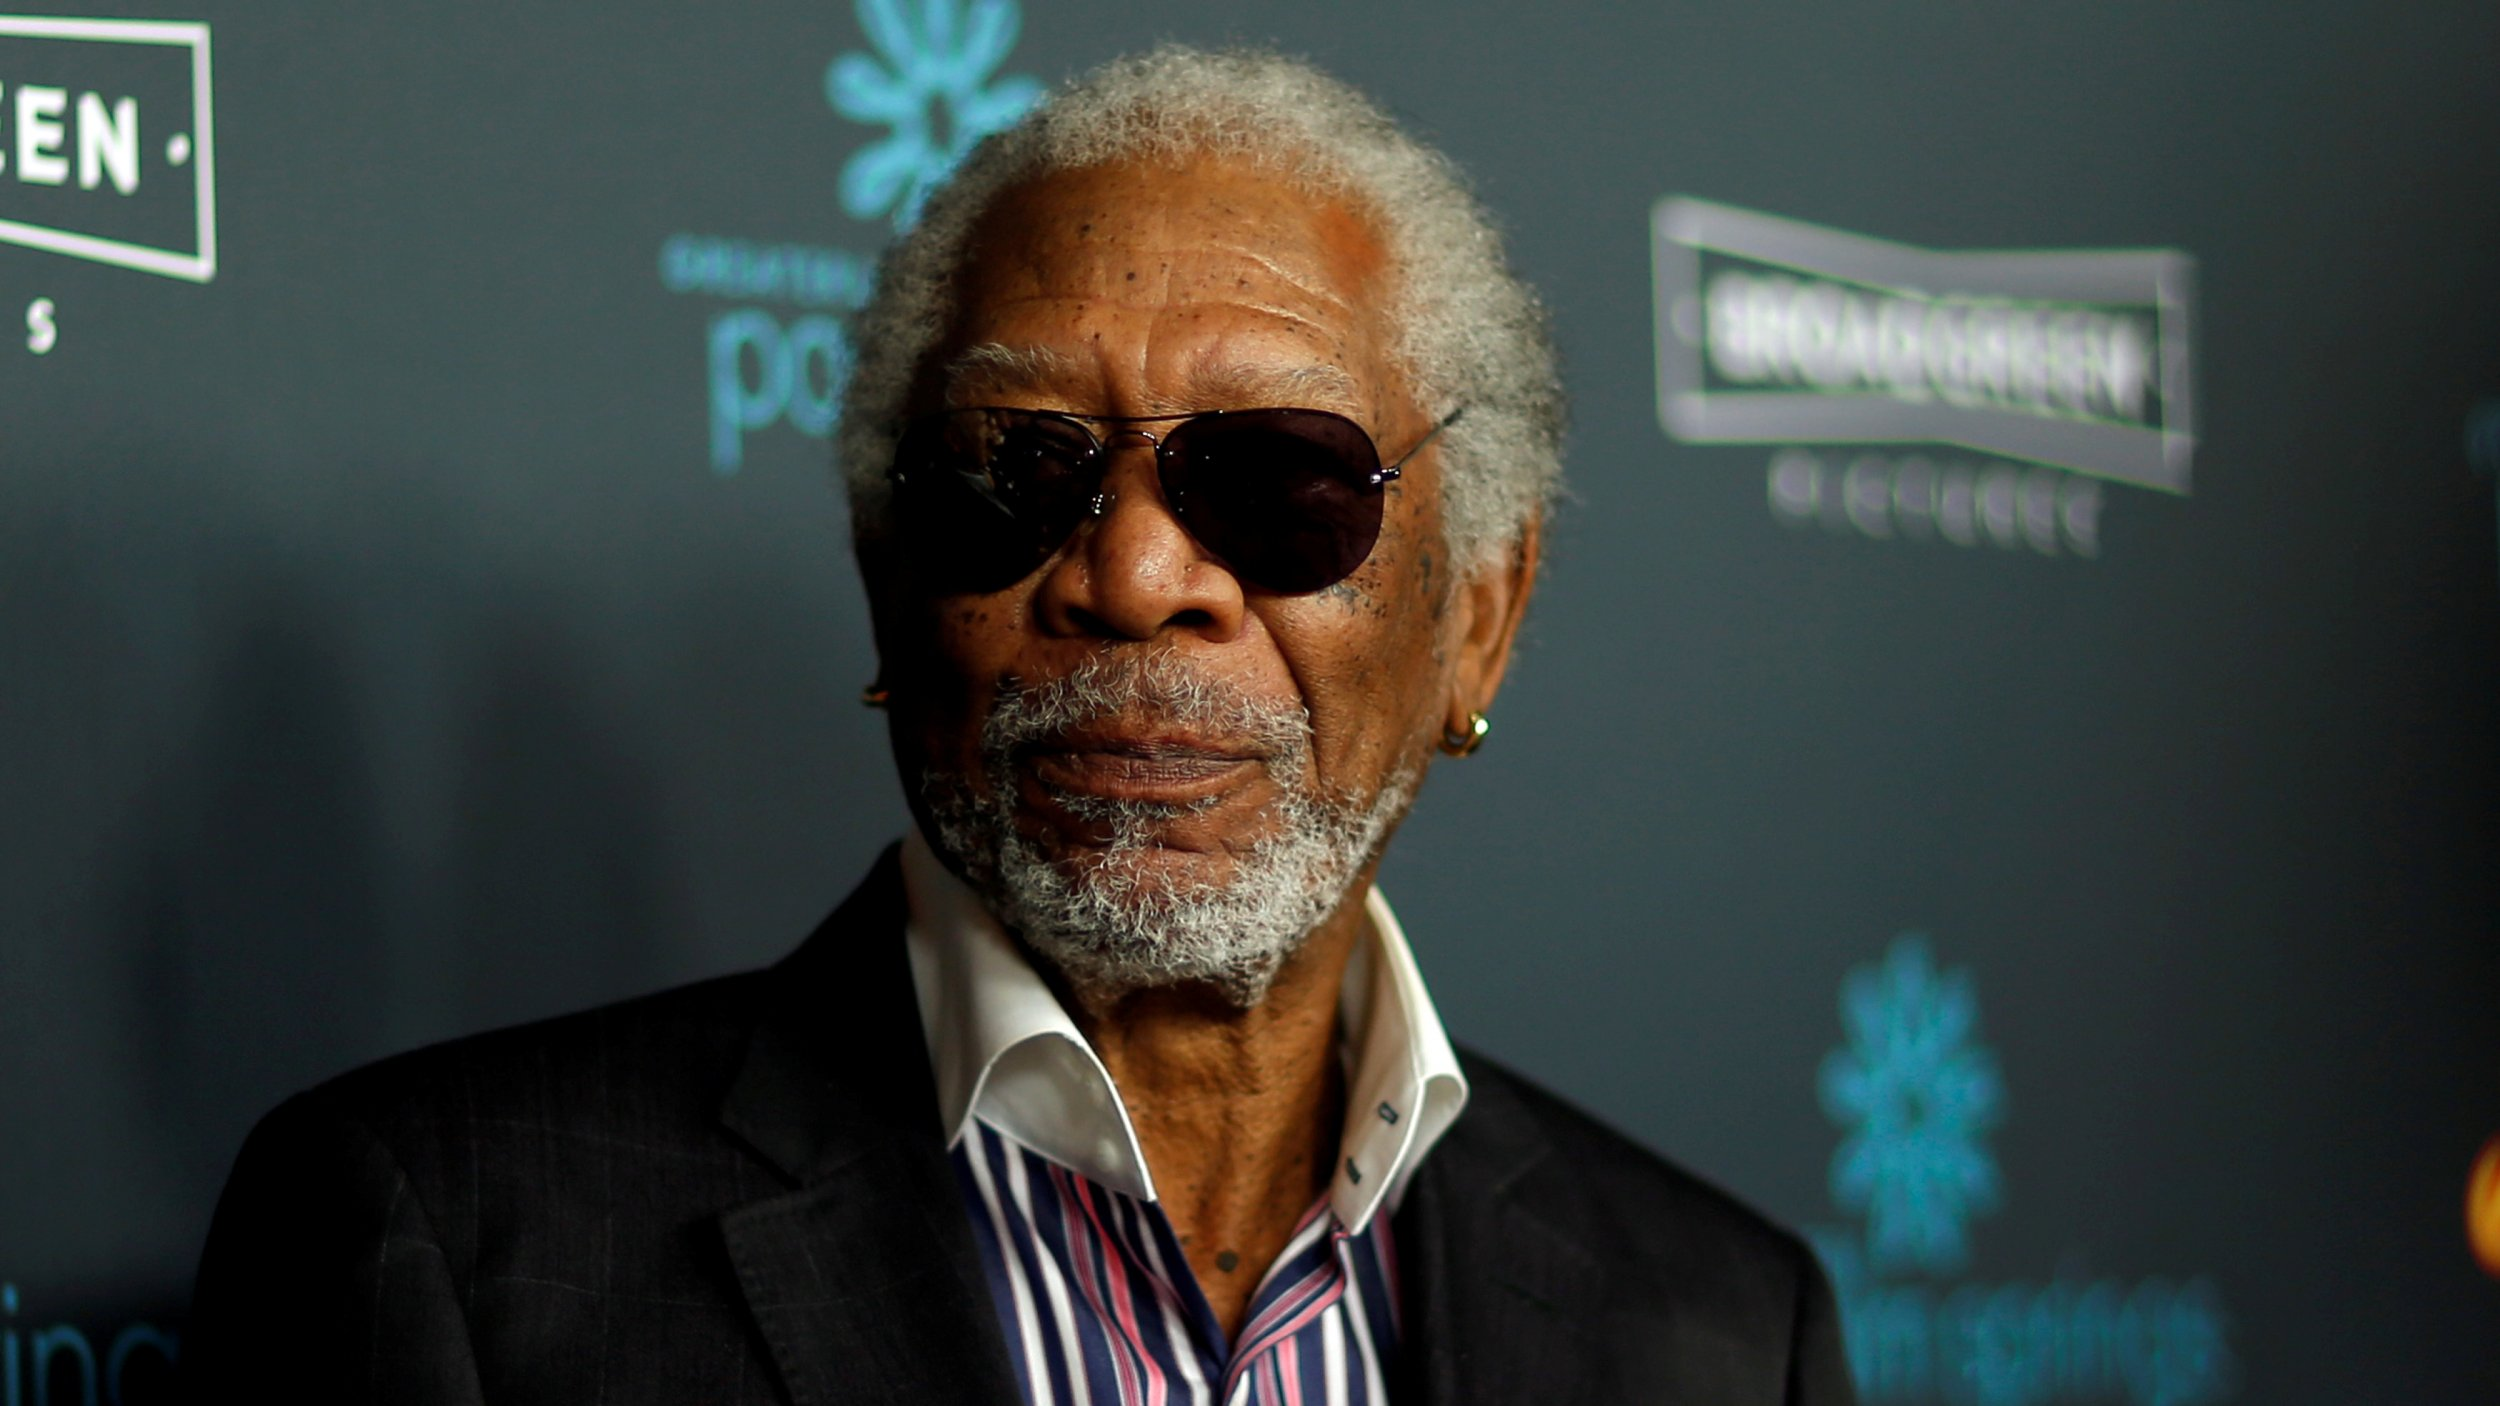 Morgan Freeman S Voice Pulled From Advertisements Amid